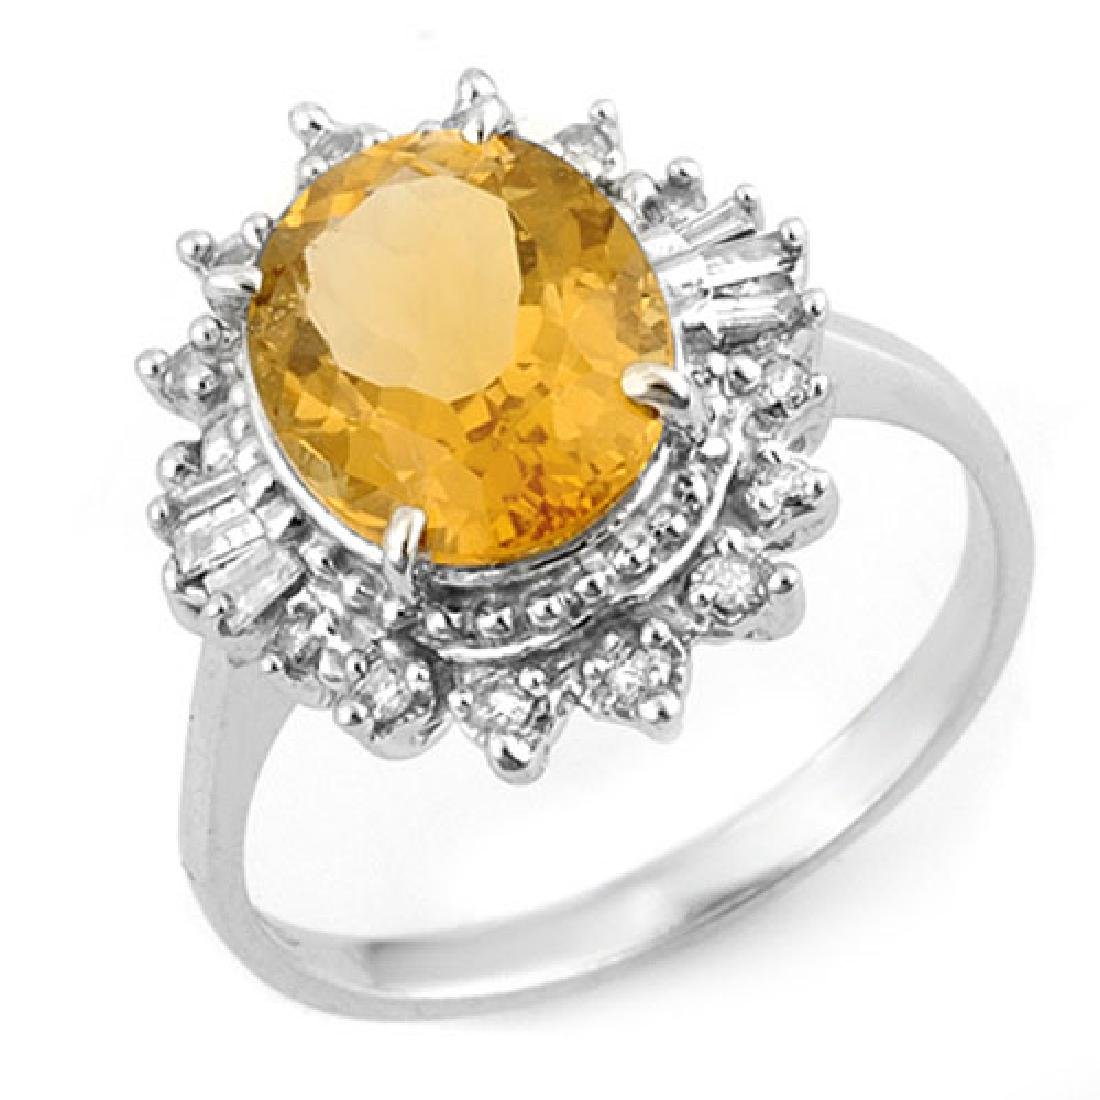 3.45 CTW Citrine & Diamond Ring 18K White Gold